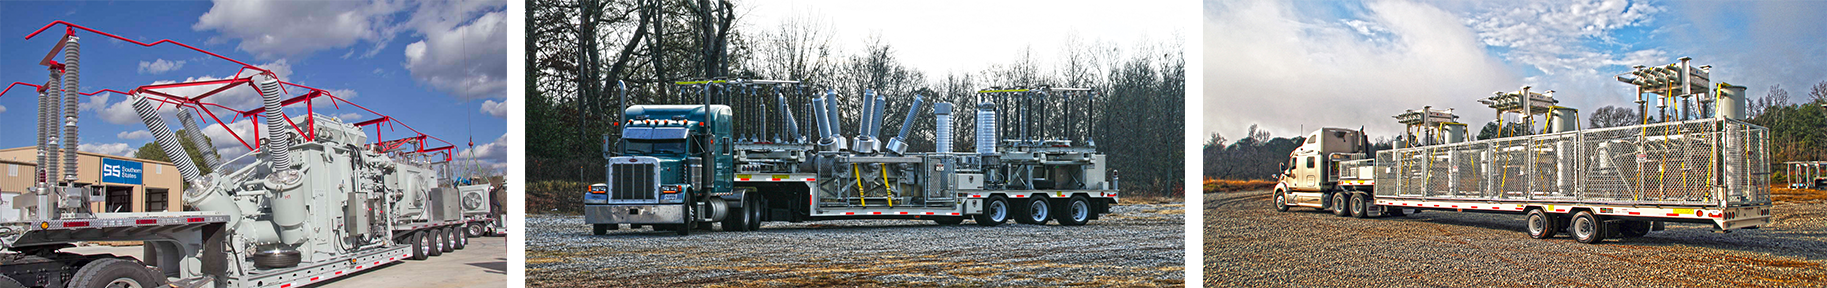 Examples of mobile substations